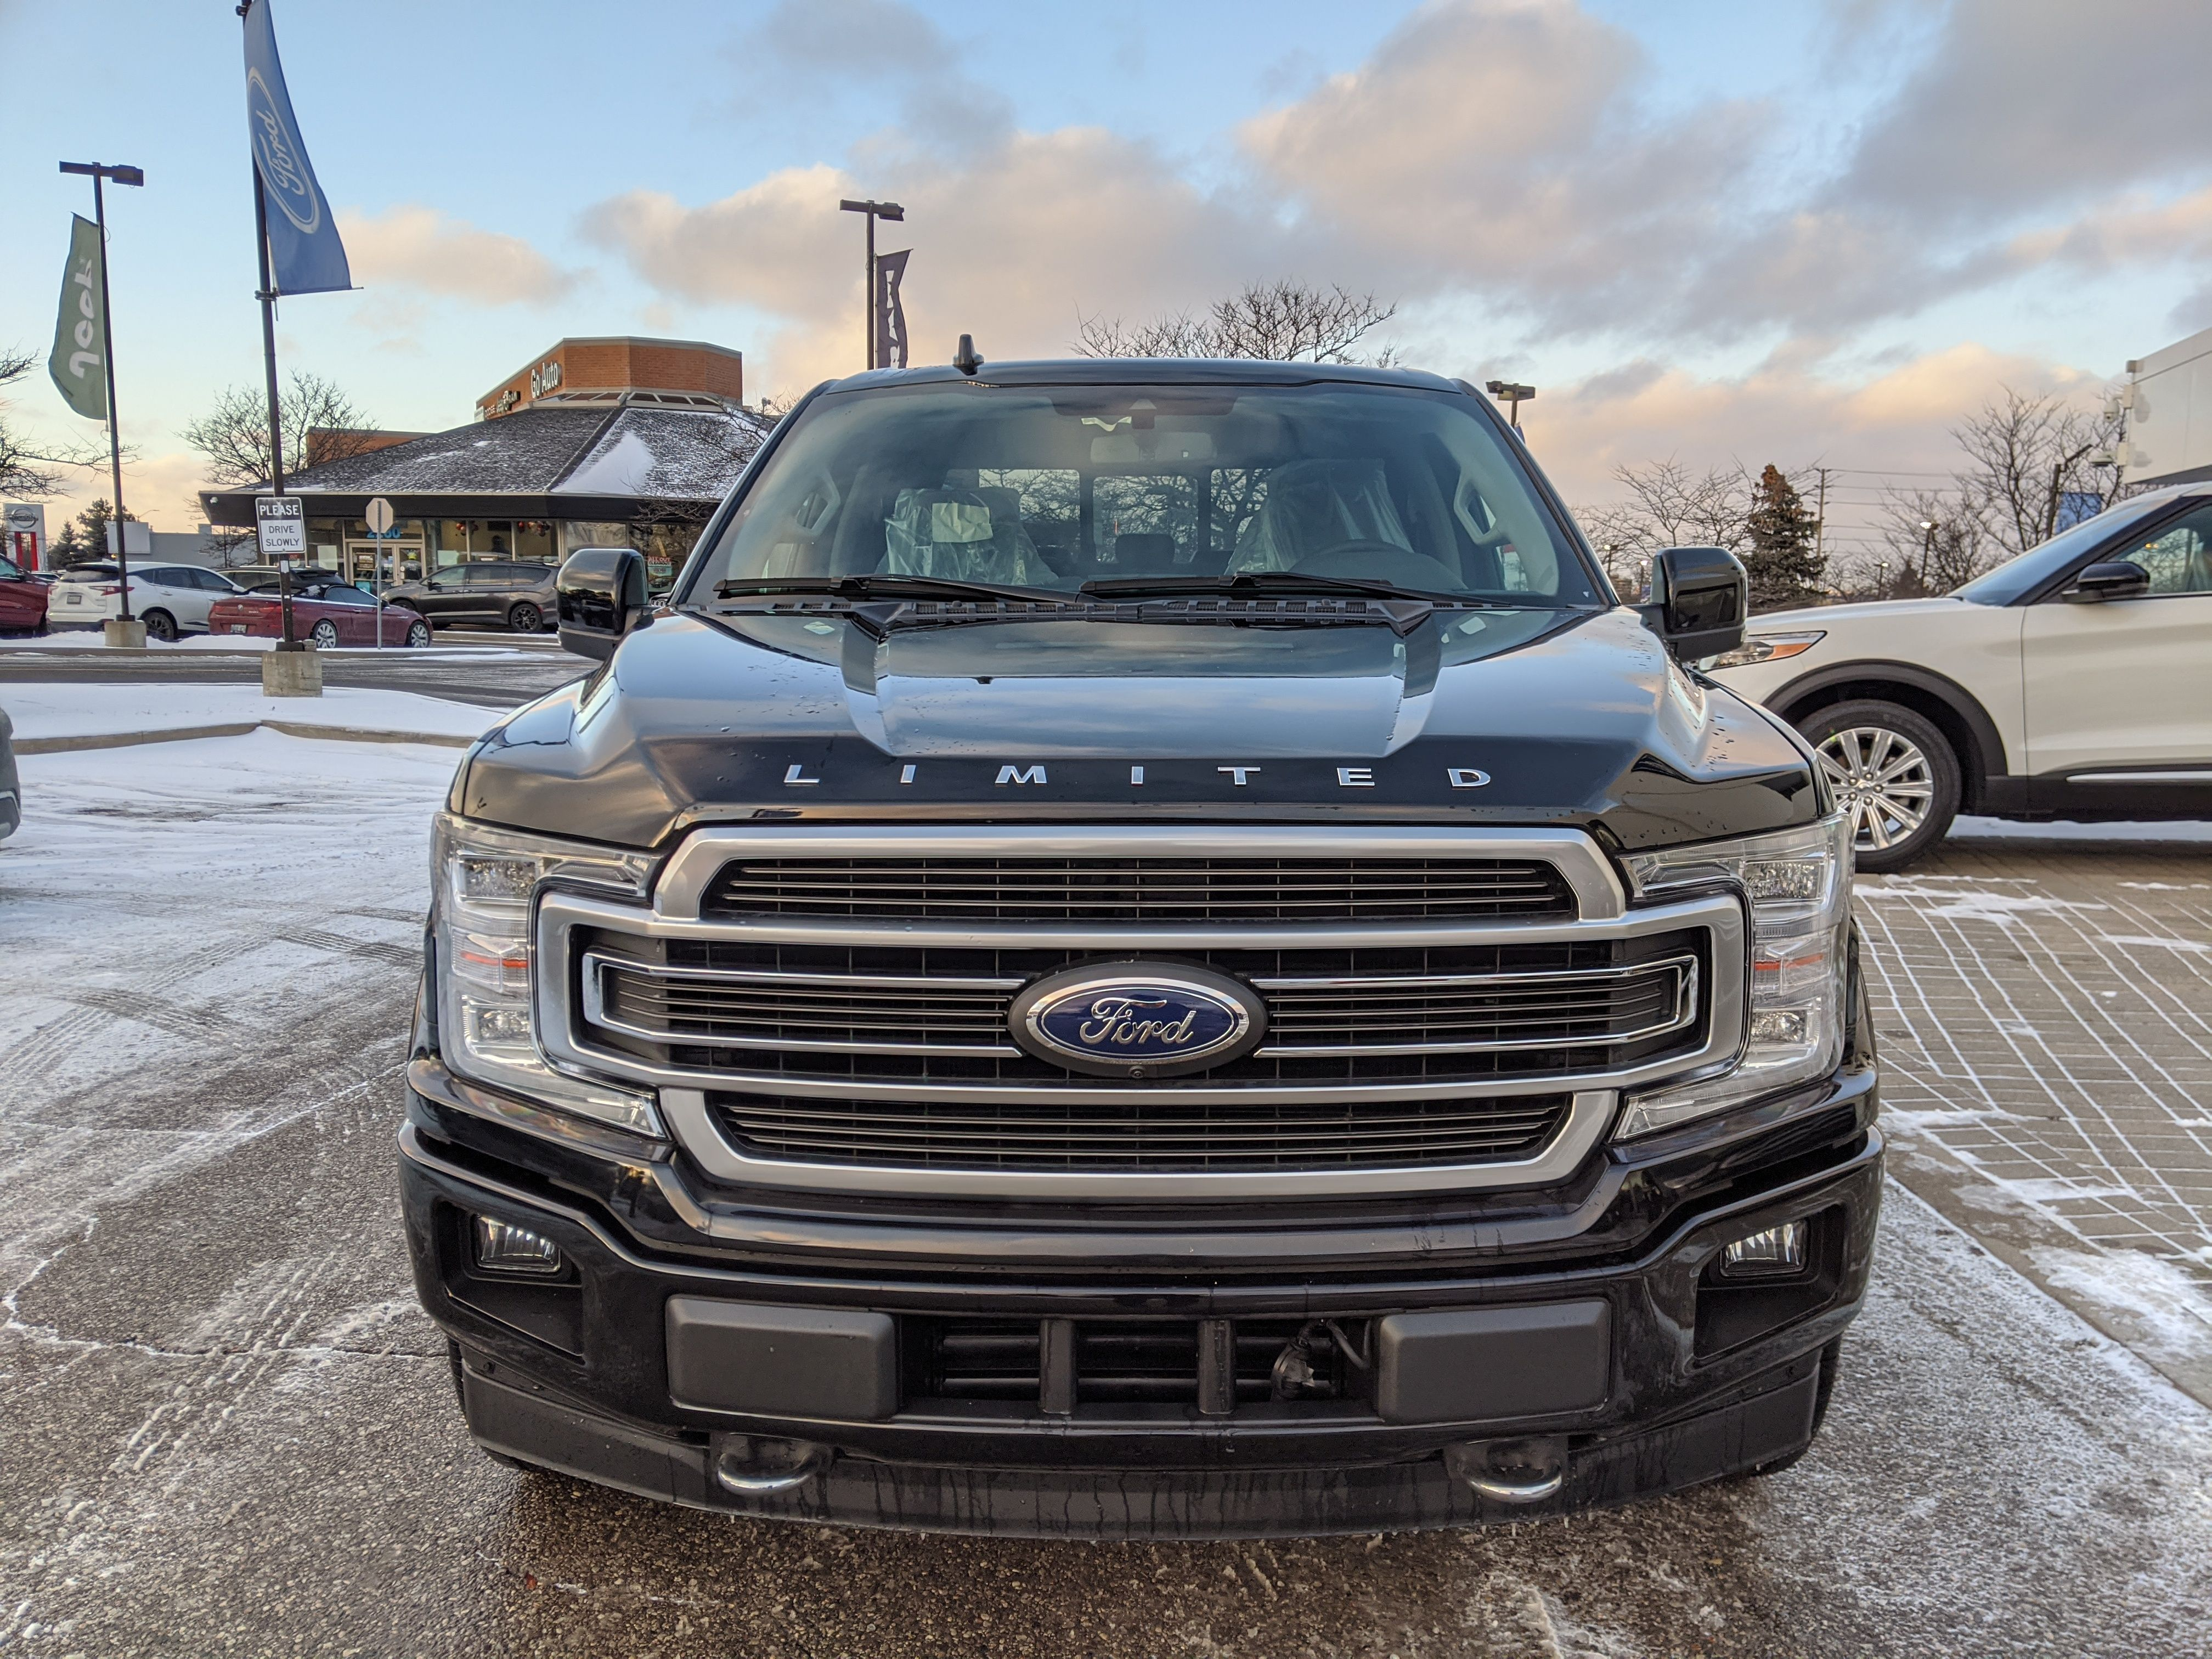 Sold This Bold Truck Meadowvale Ford Is Offering An Additional 1000 Trade In Bonus On Top Of All Other Discounts From Ford In 2020 Ford F150 Ford F150 Platinum F150